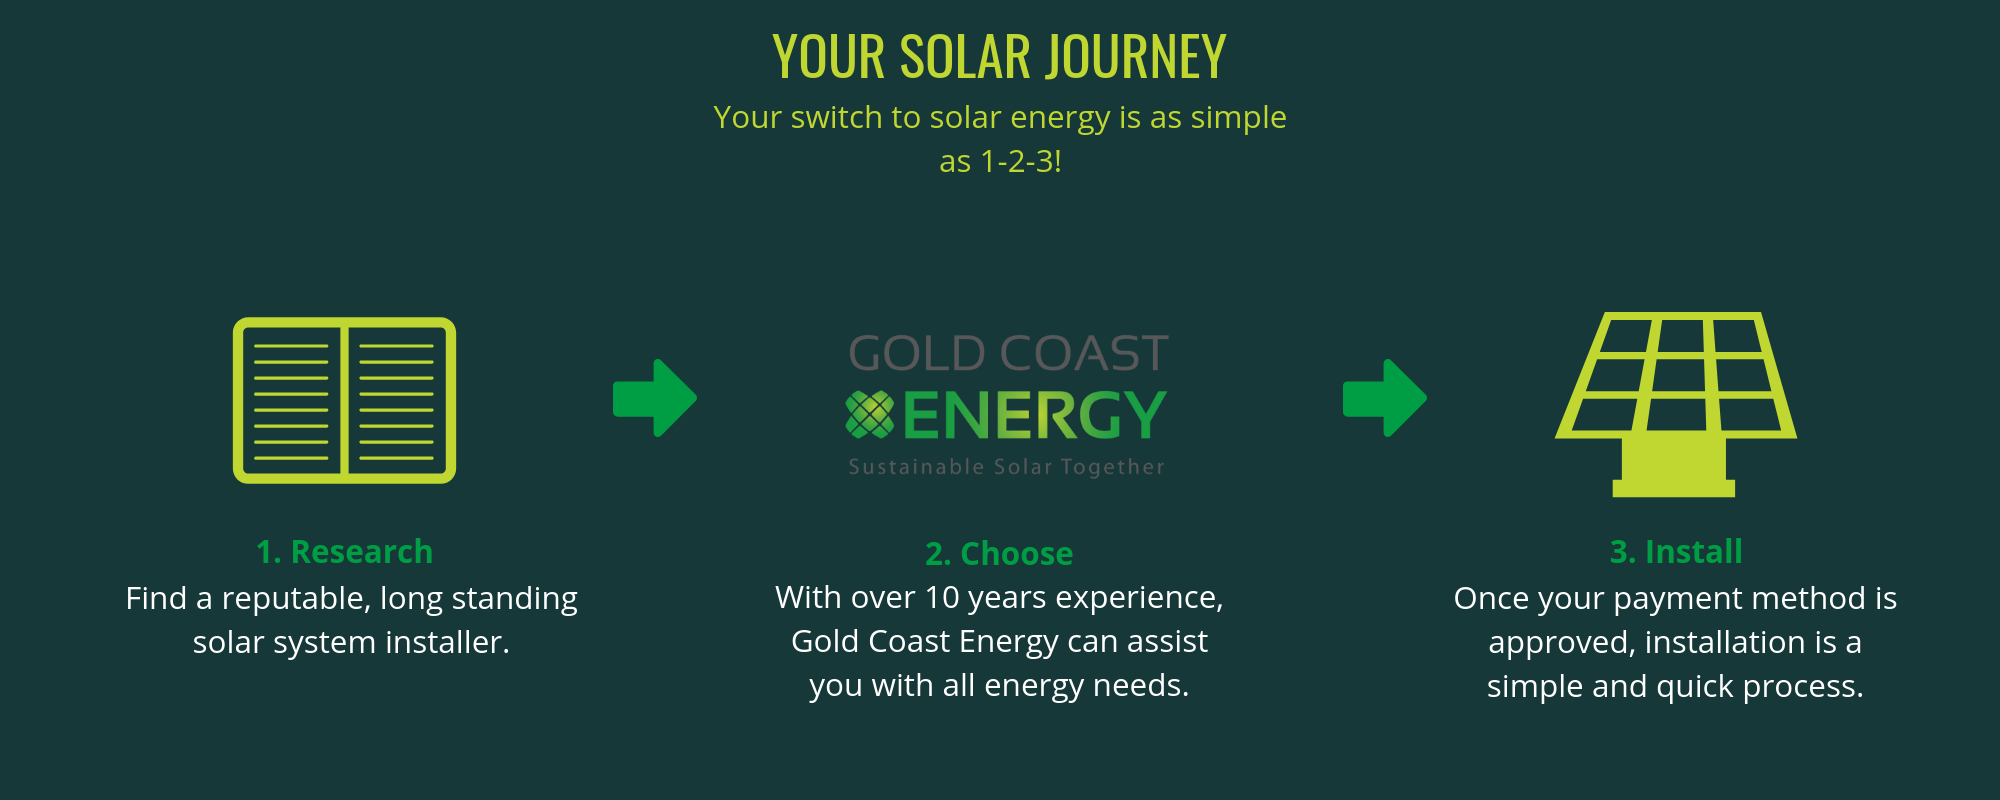 Solar Gold Coast infographic | Gold Coast Energy